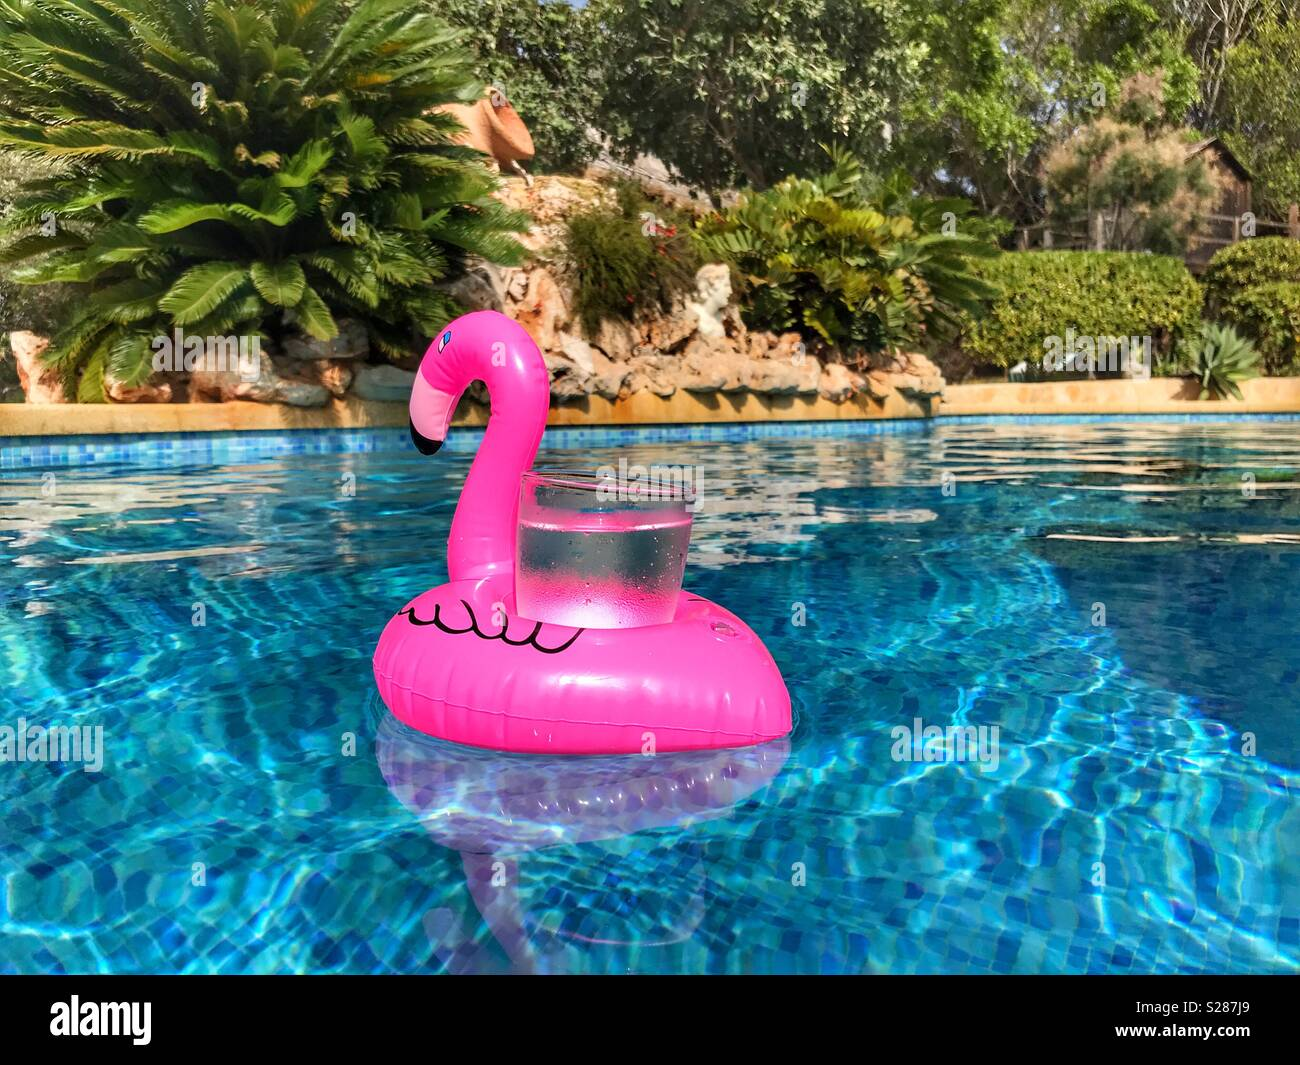 Pink Flamingo Drinks Holder Floating In A Swimming Pool With A Glass